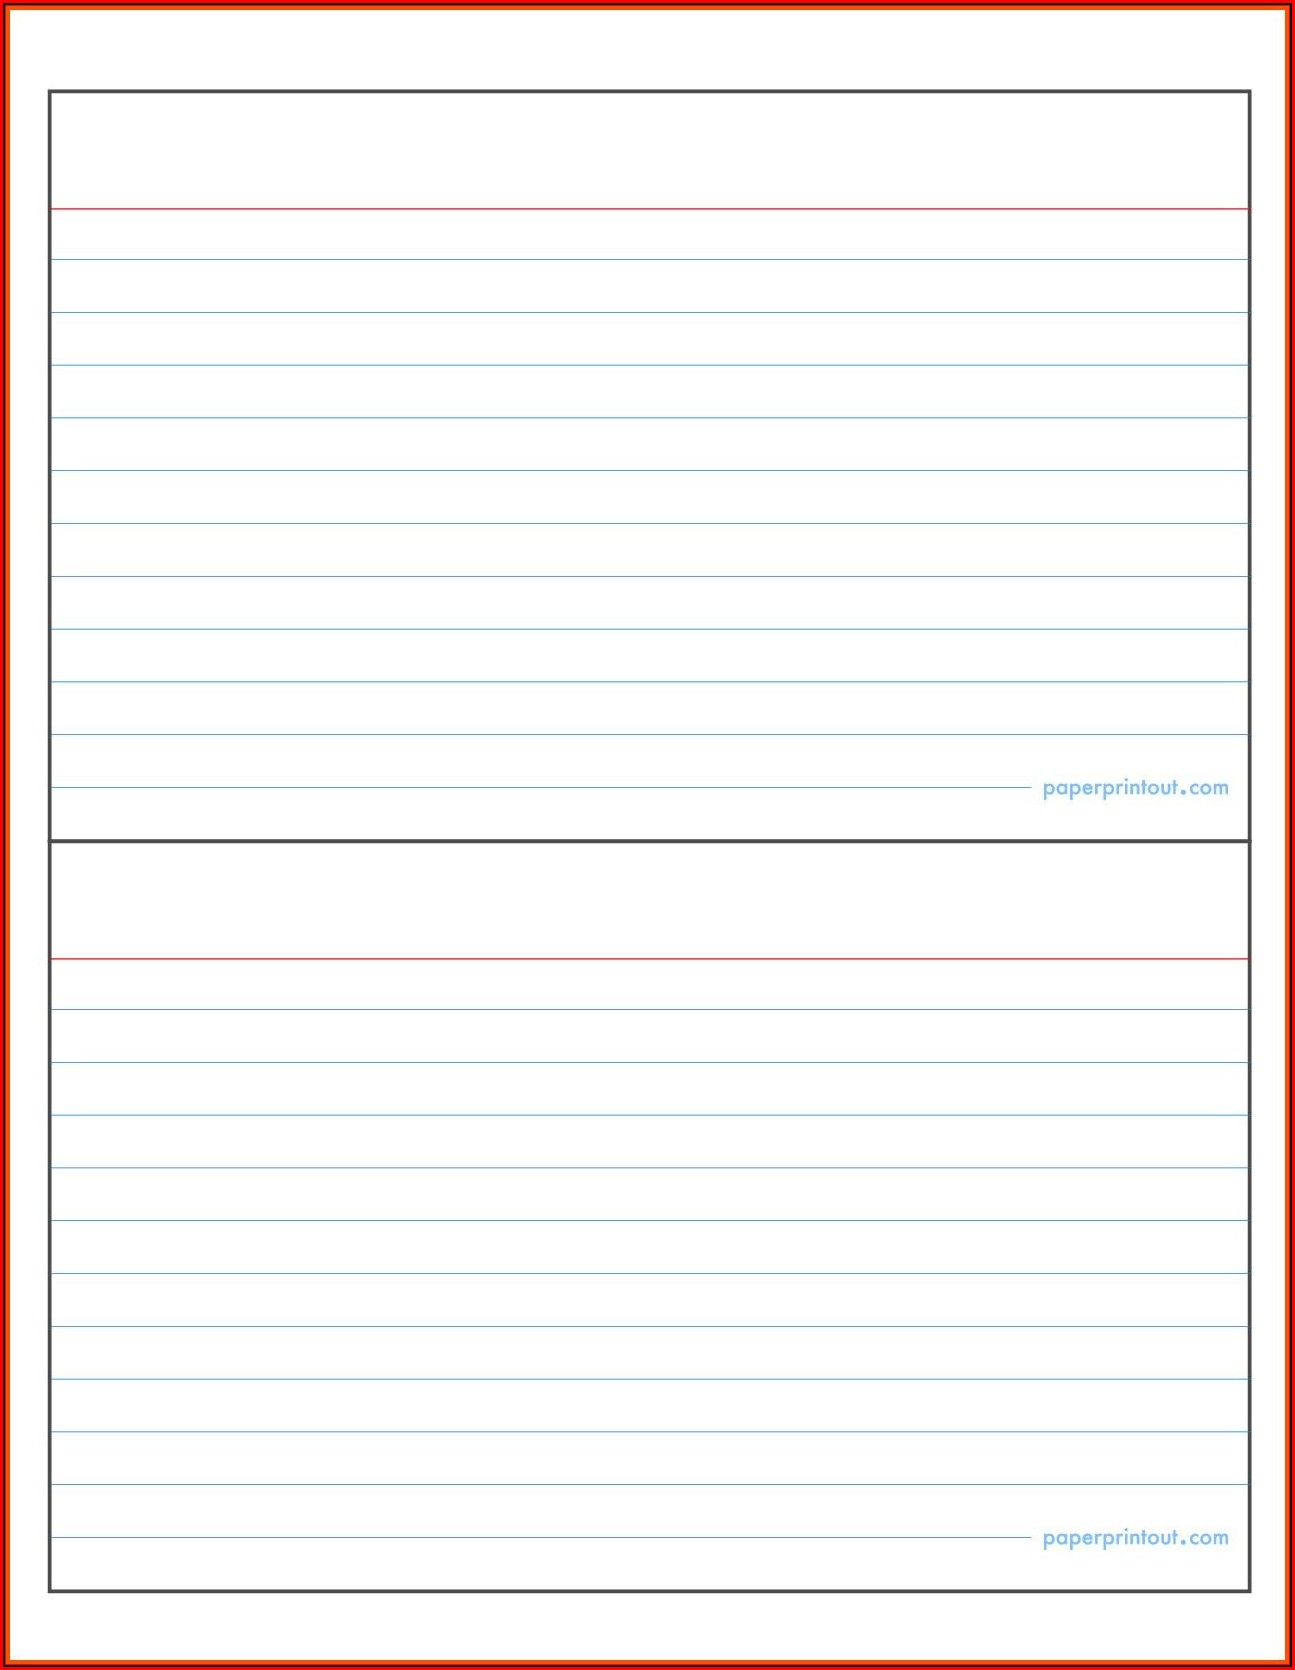 4x6 Index Card Template For Pages